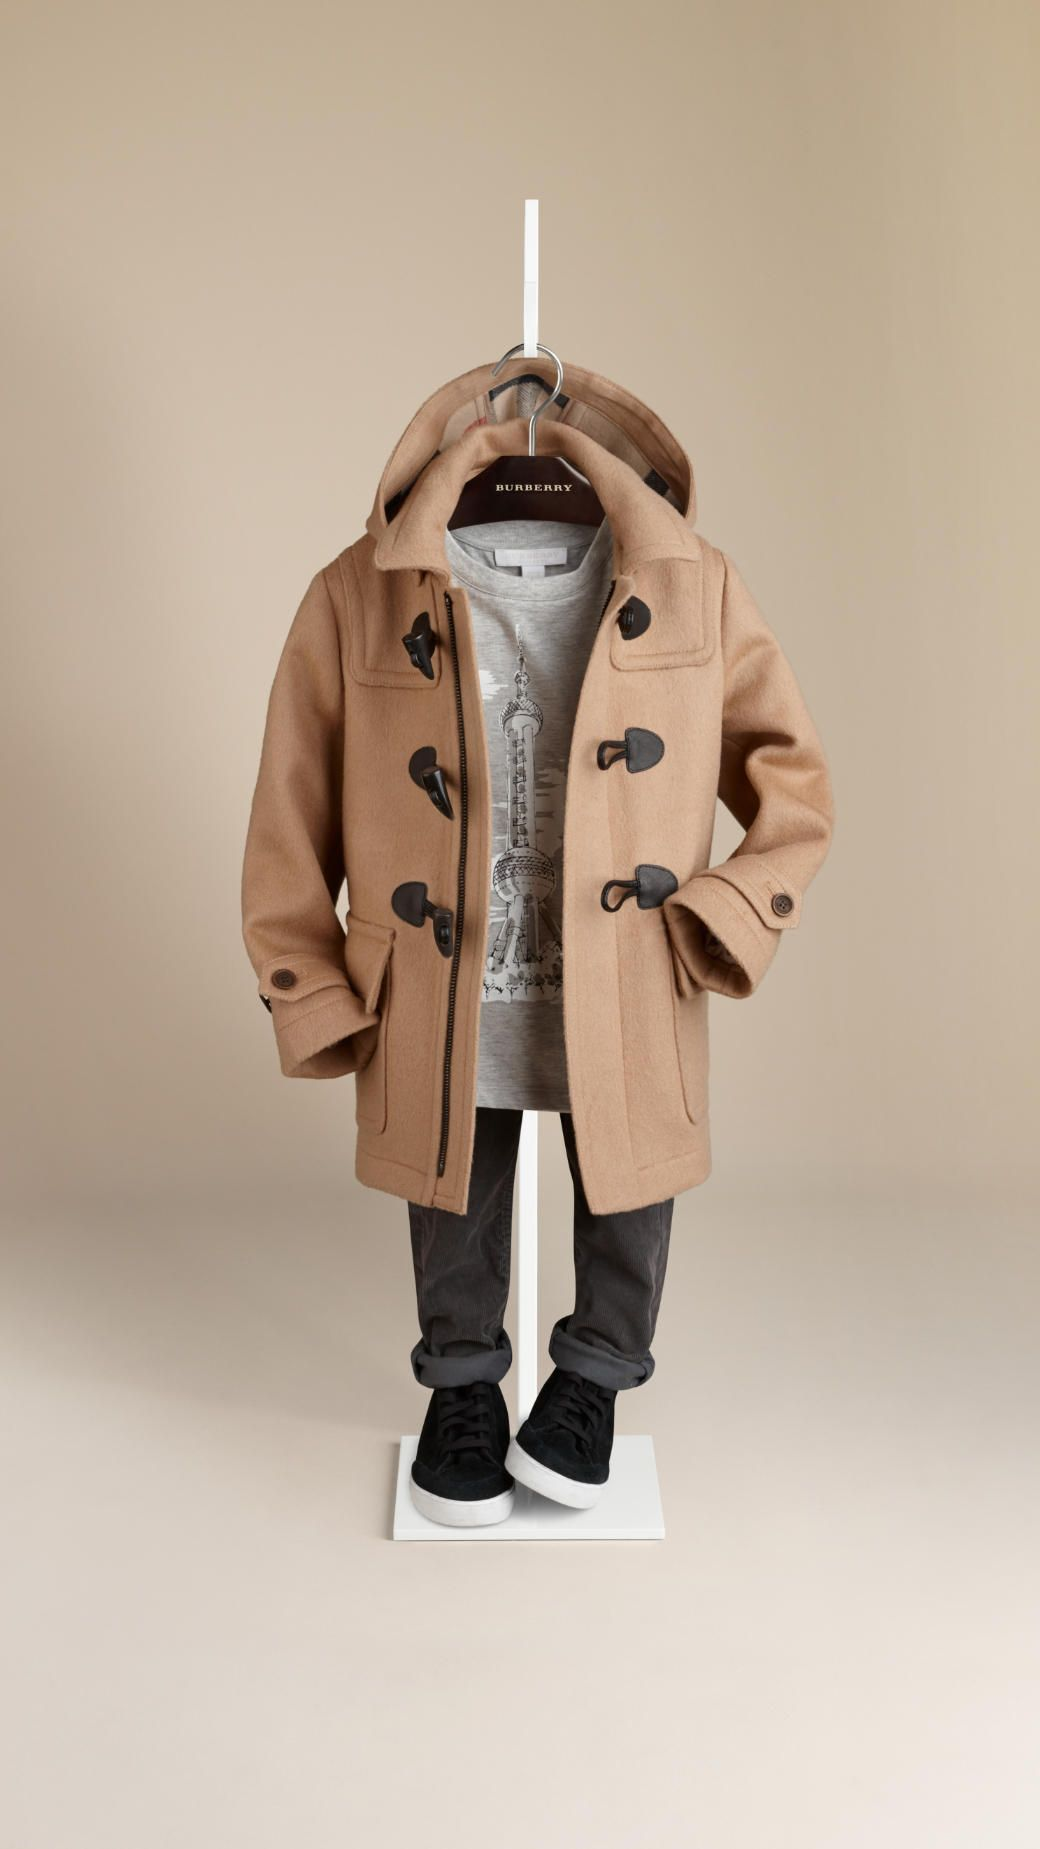 Duffle-coat en laine   Burberry   imad   Pinterest   Kids fashion ... 5613bc77485